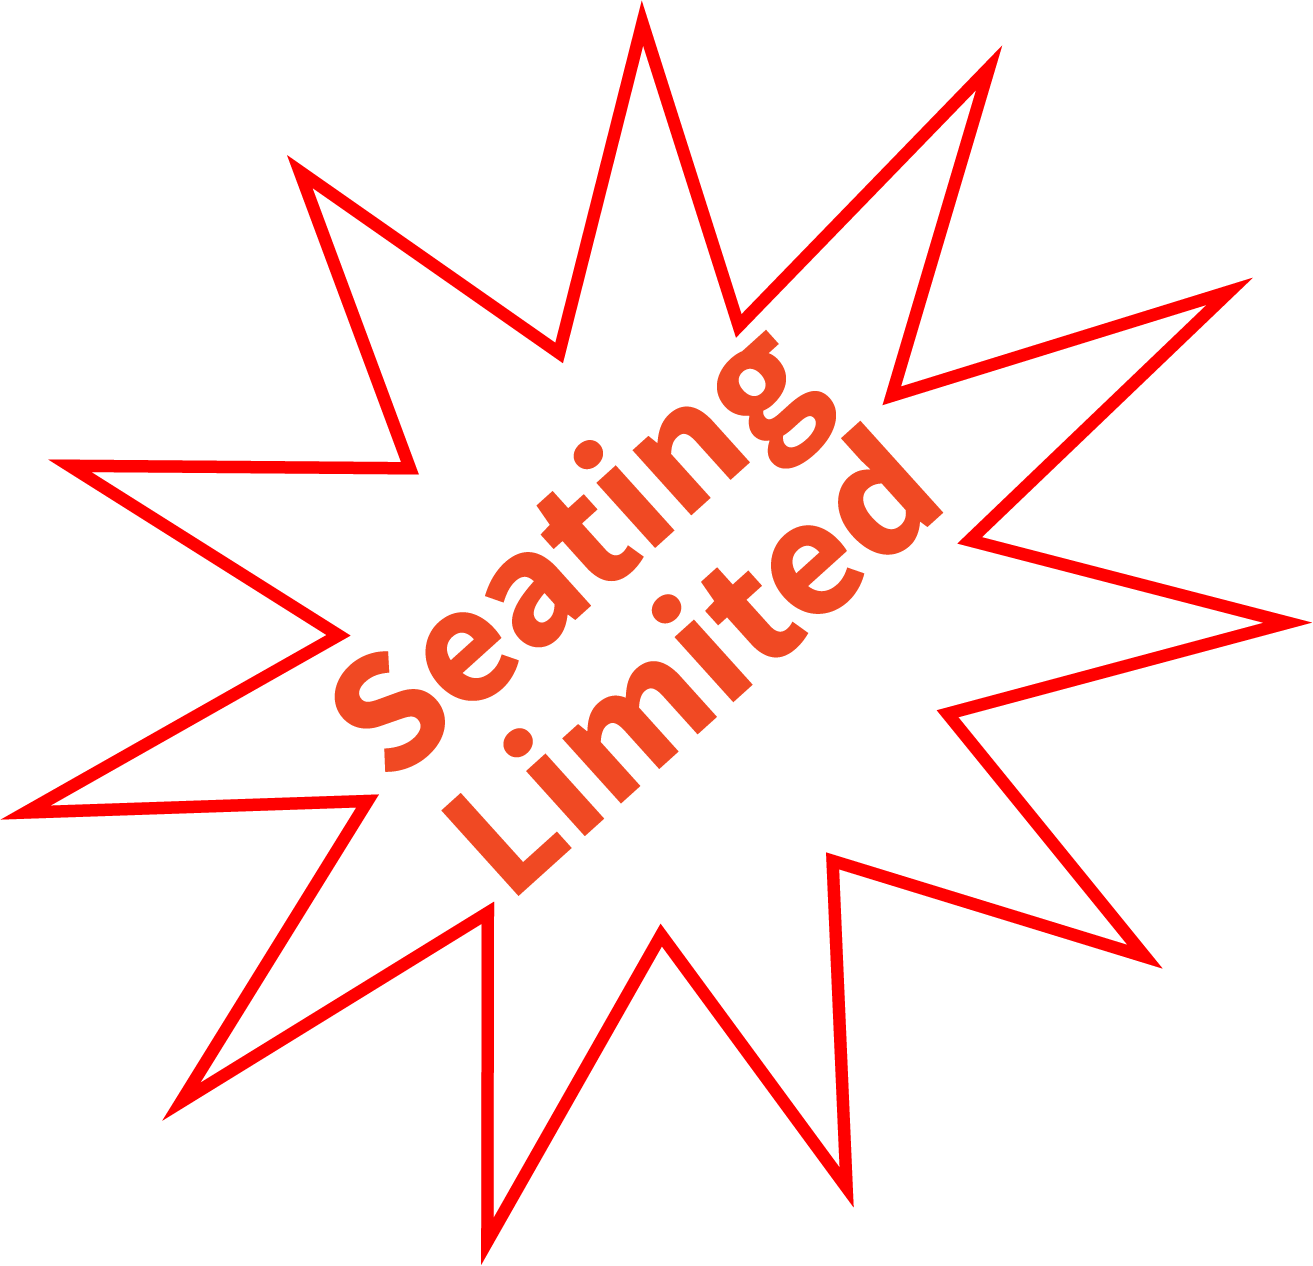 Seating Limited